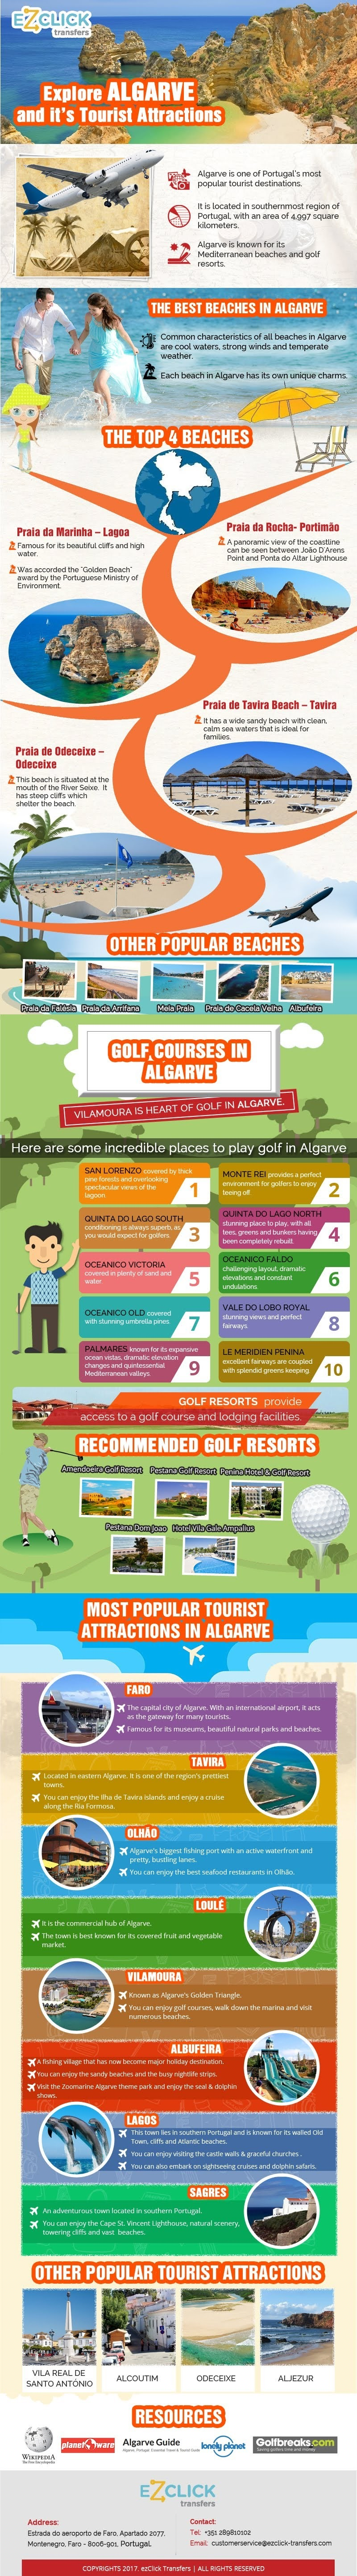 explore-algarve-and-its-tourist-attractions-infographic